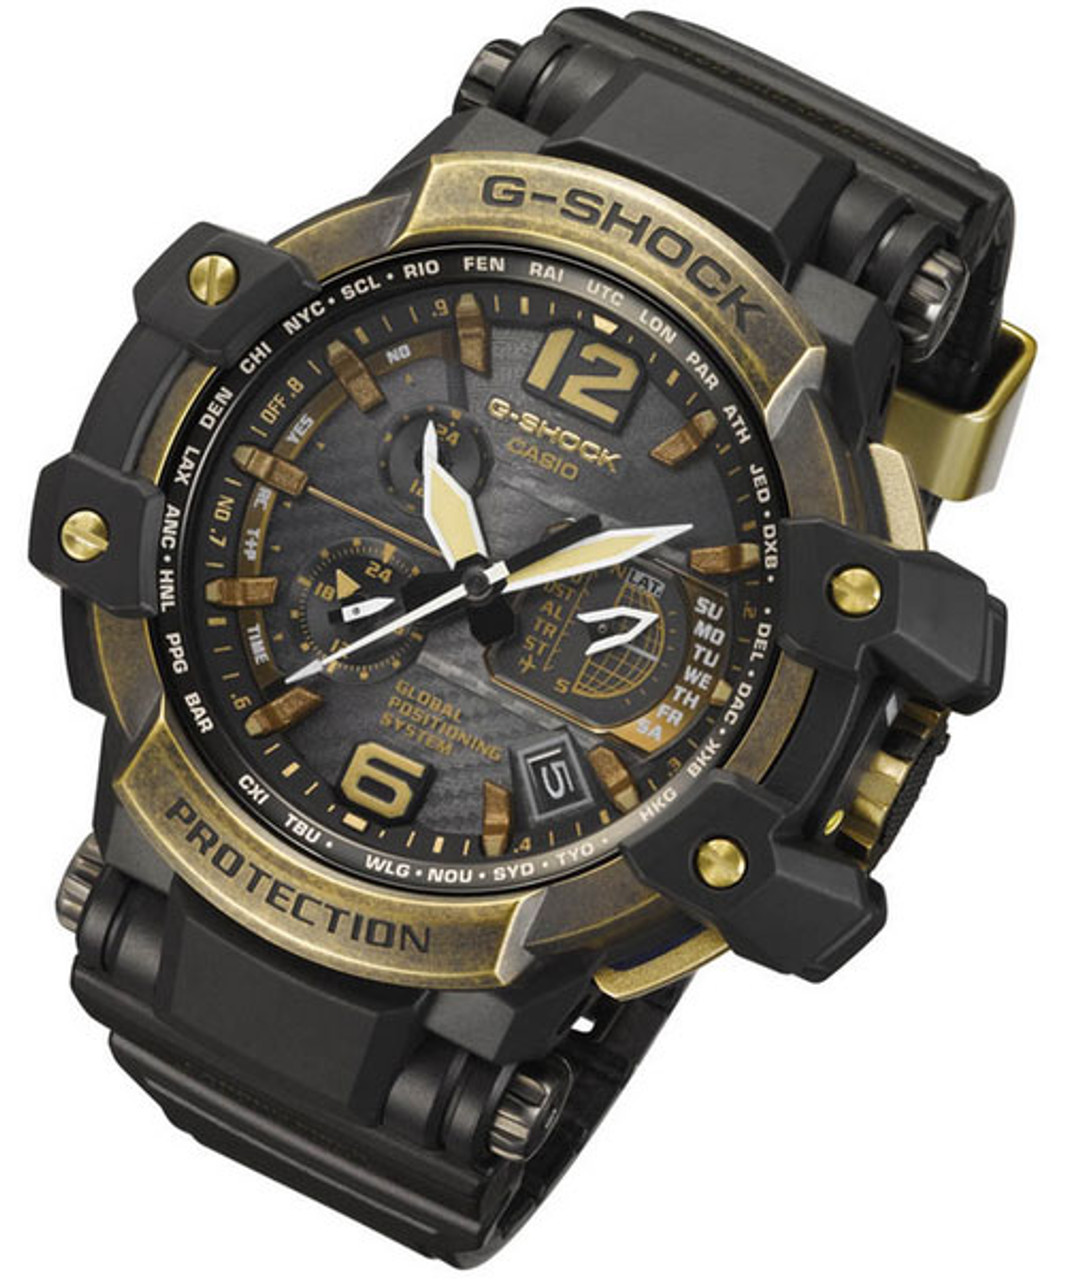 G-Shock GPS GPW-1000TBS Baselworld 2015